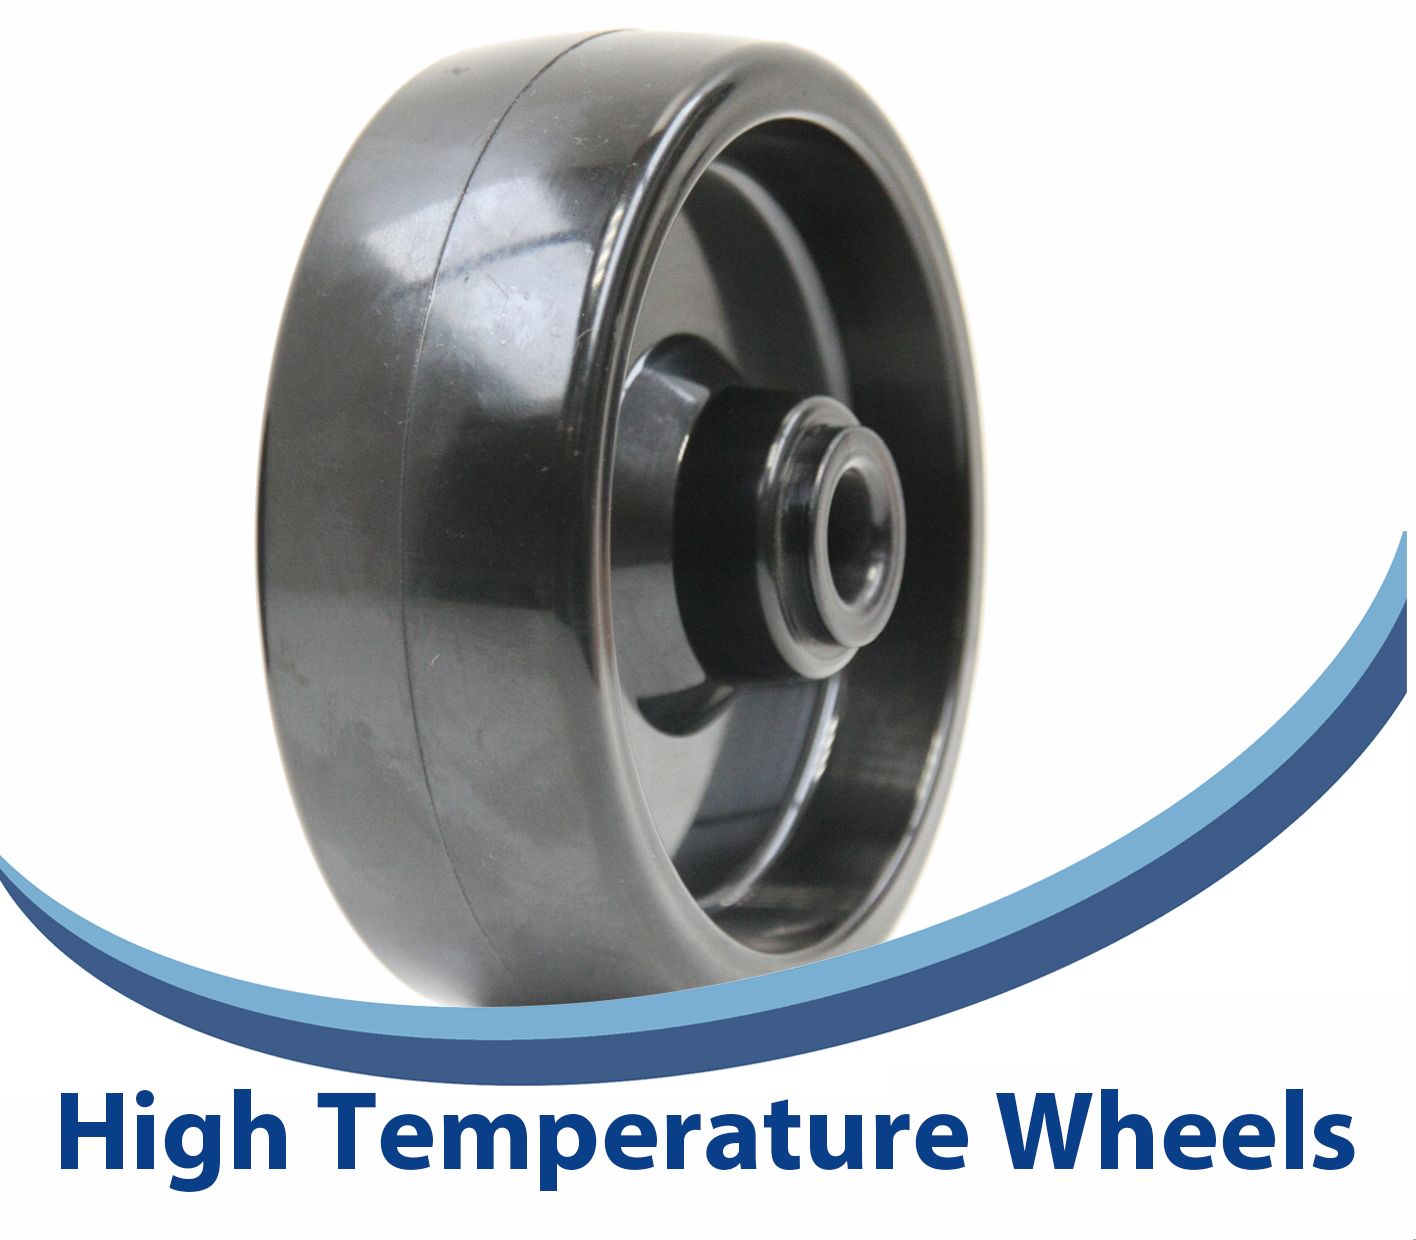 High Temperature Wheels